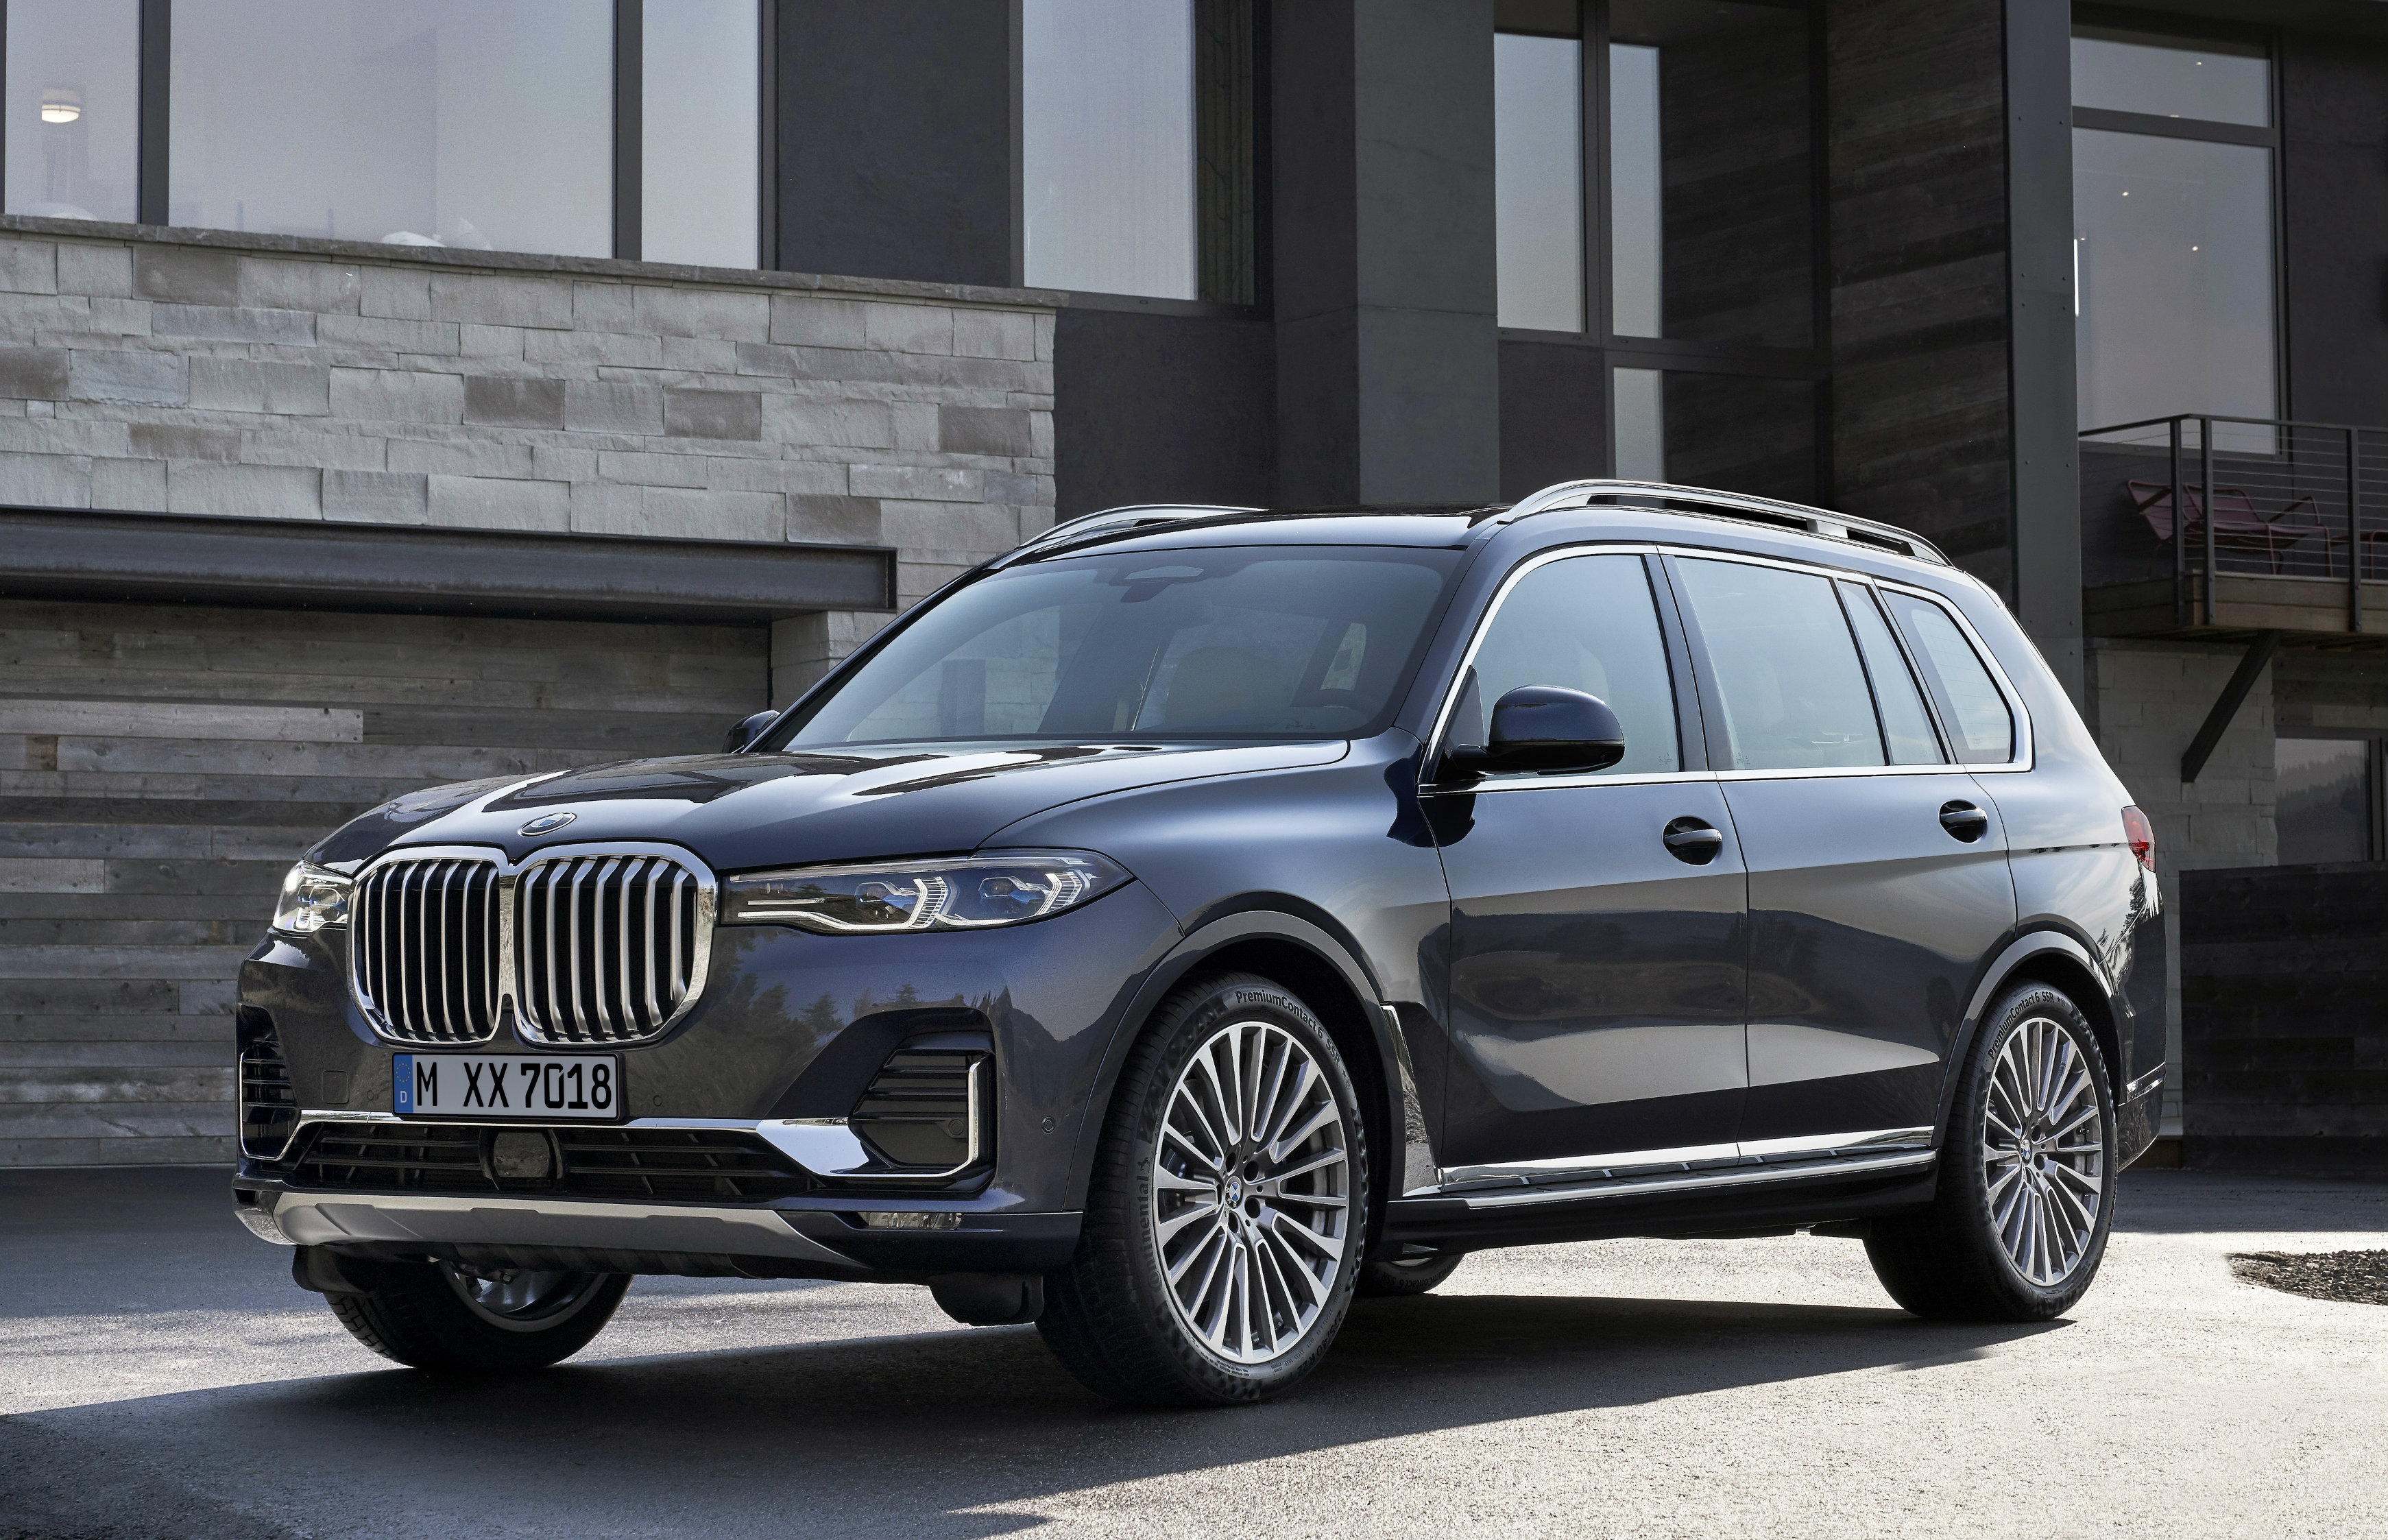 The X7 is the first BMW SUV to fuse the presence, exclusivity and spaciousness of a luxury model with the agile and versatile driving properties expected of a Sports Activity Vehicle.